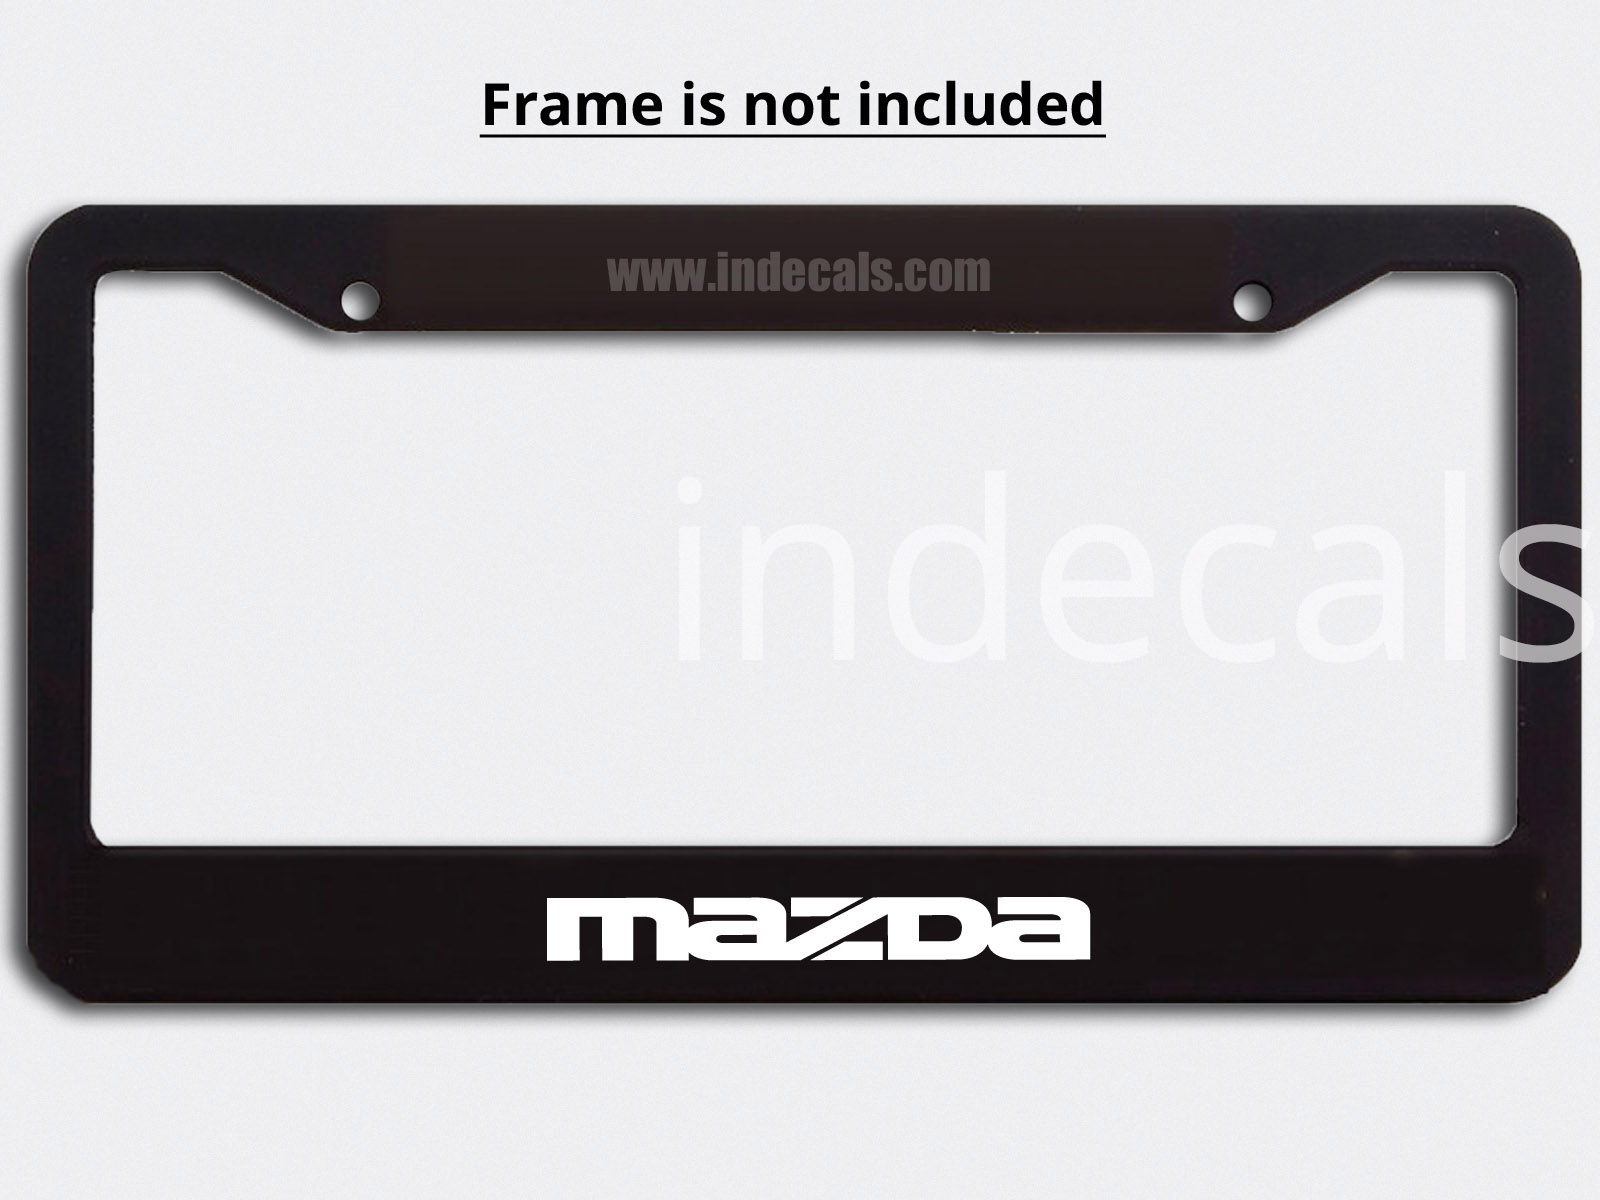 3 x Mazda Stickers for Plate Frame - White